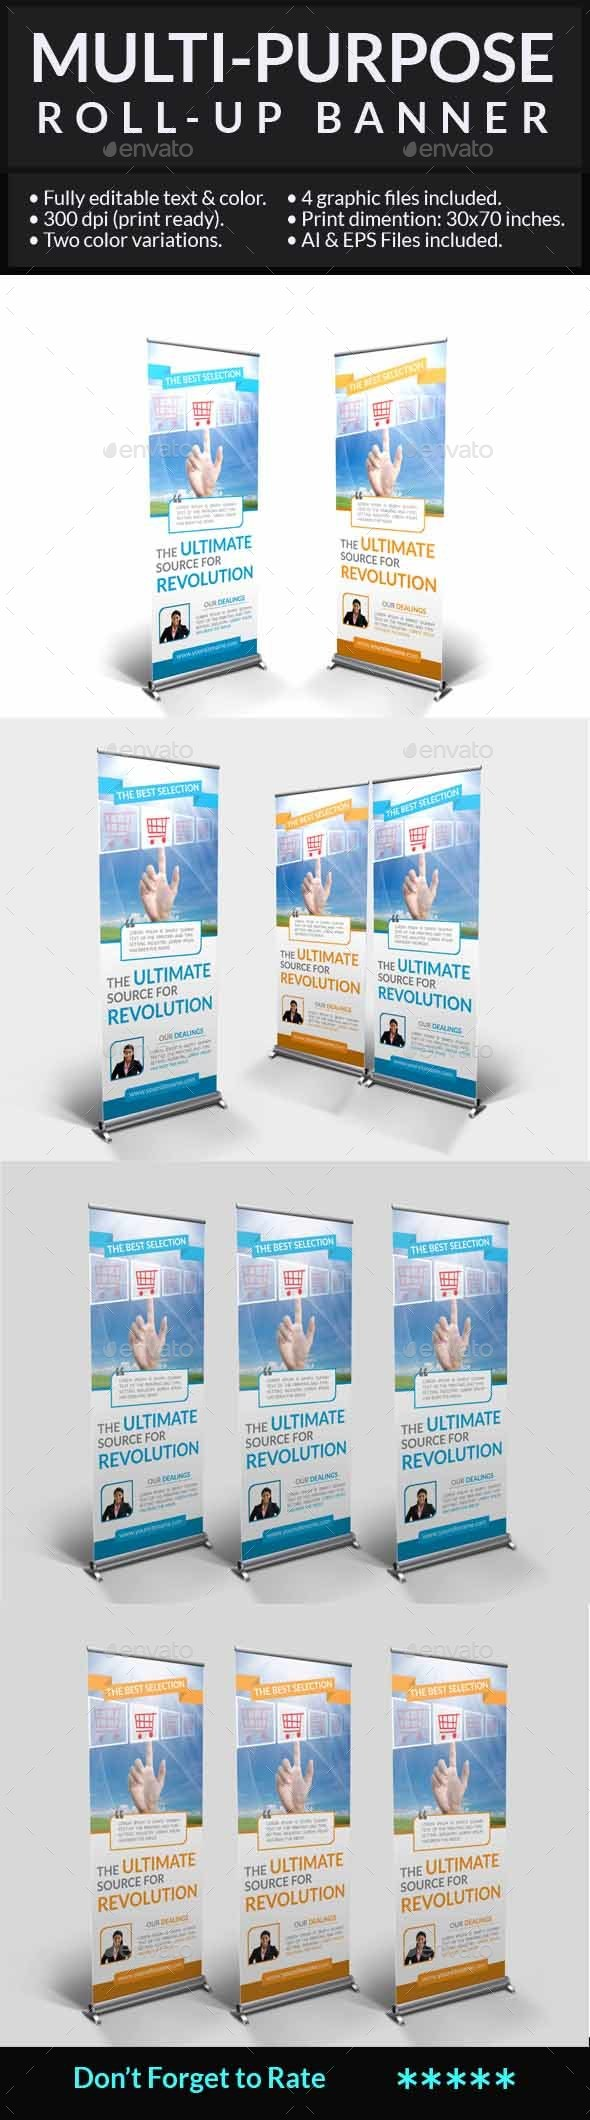 Multi-Purpose Roll-Up Banner - Signage Print Templates